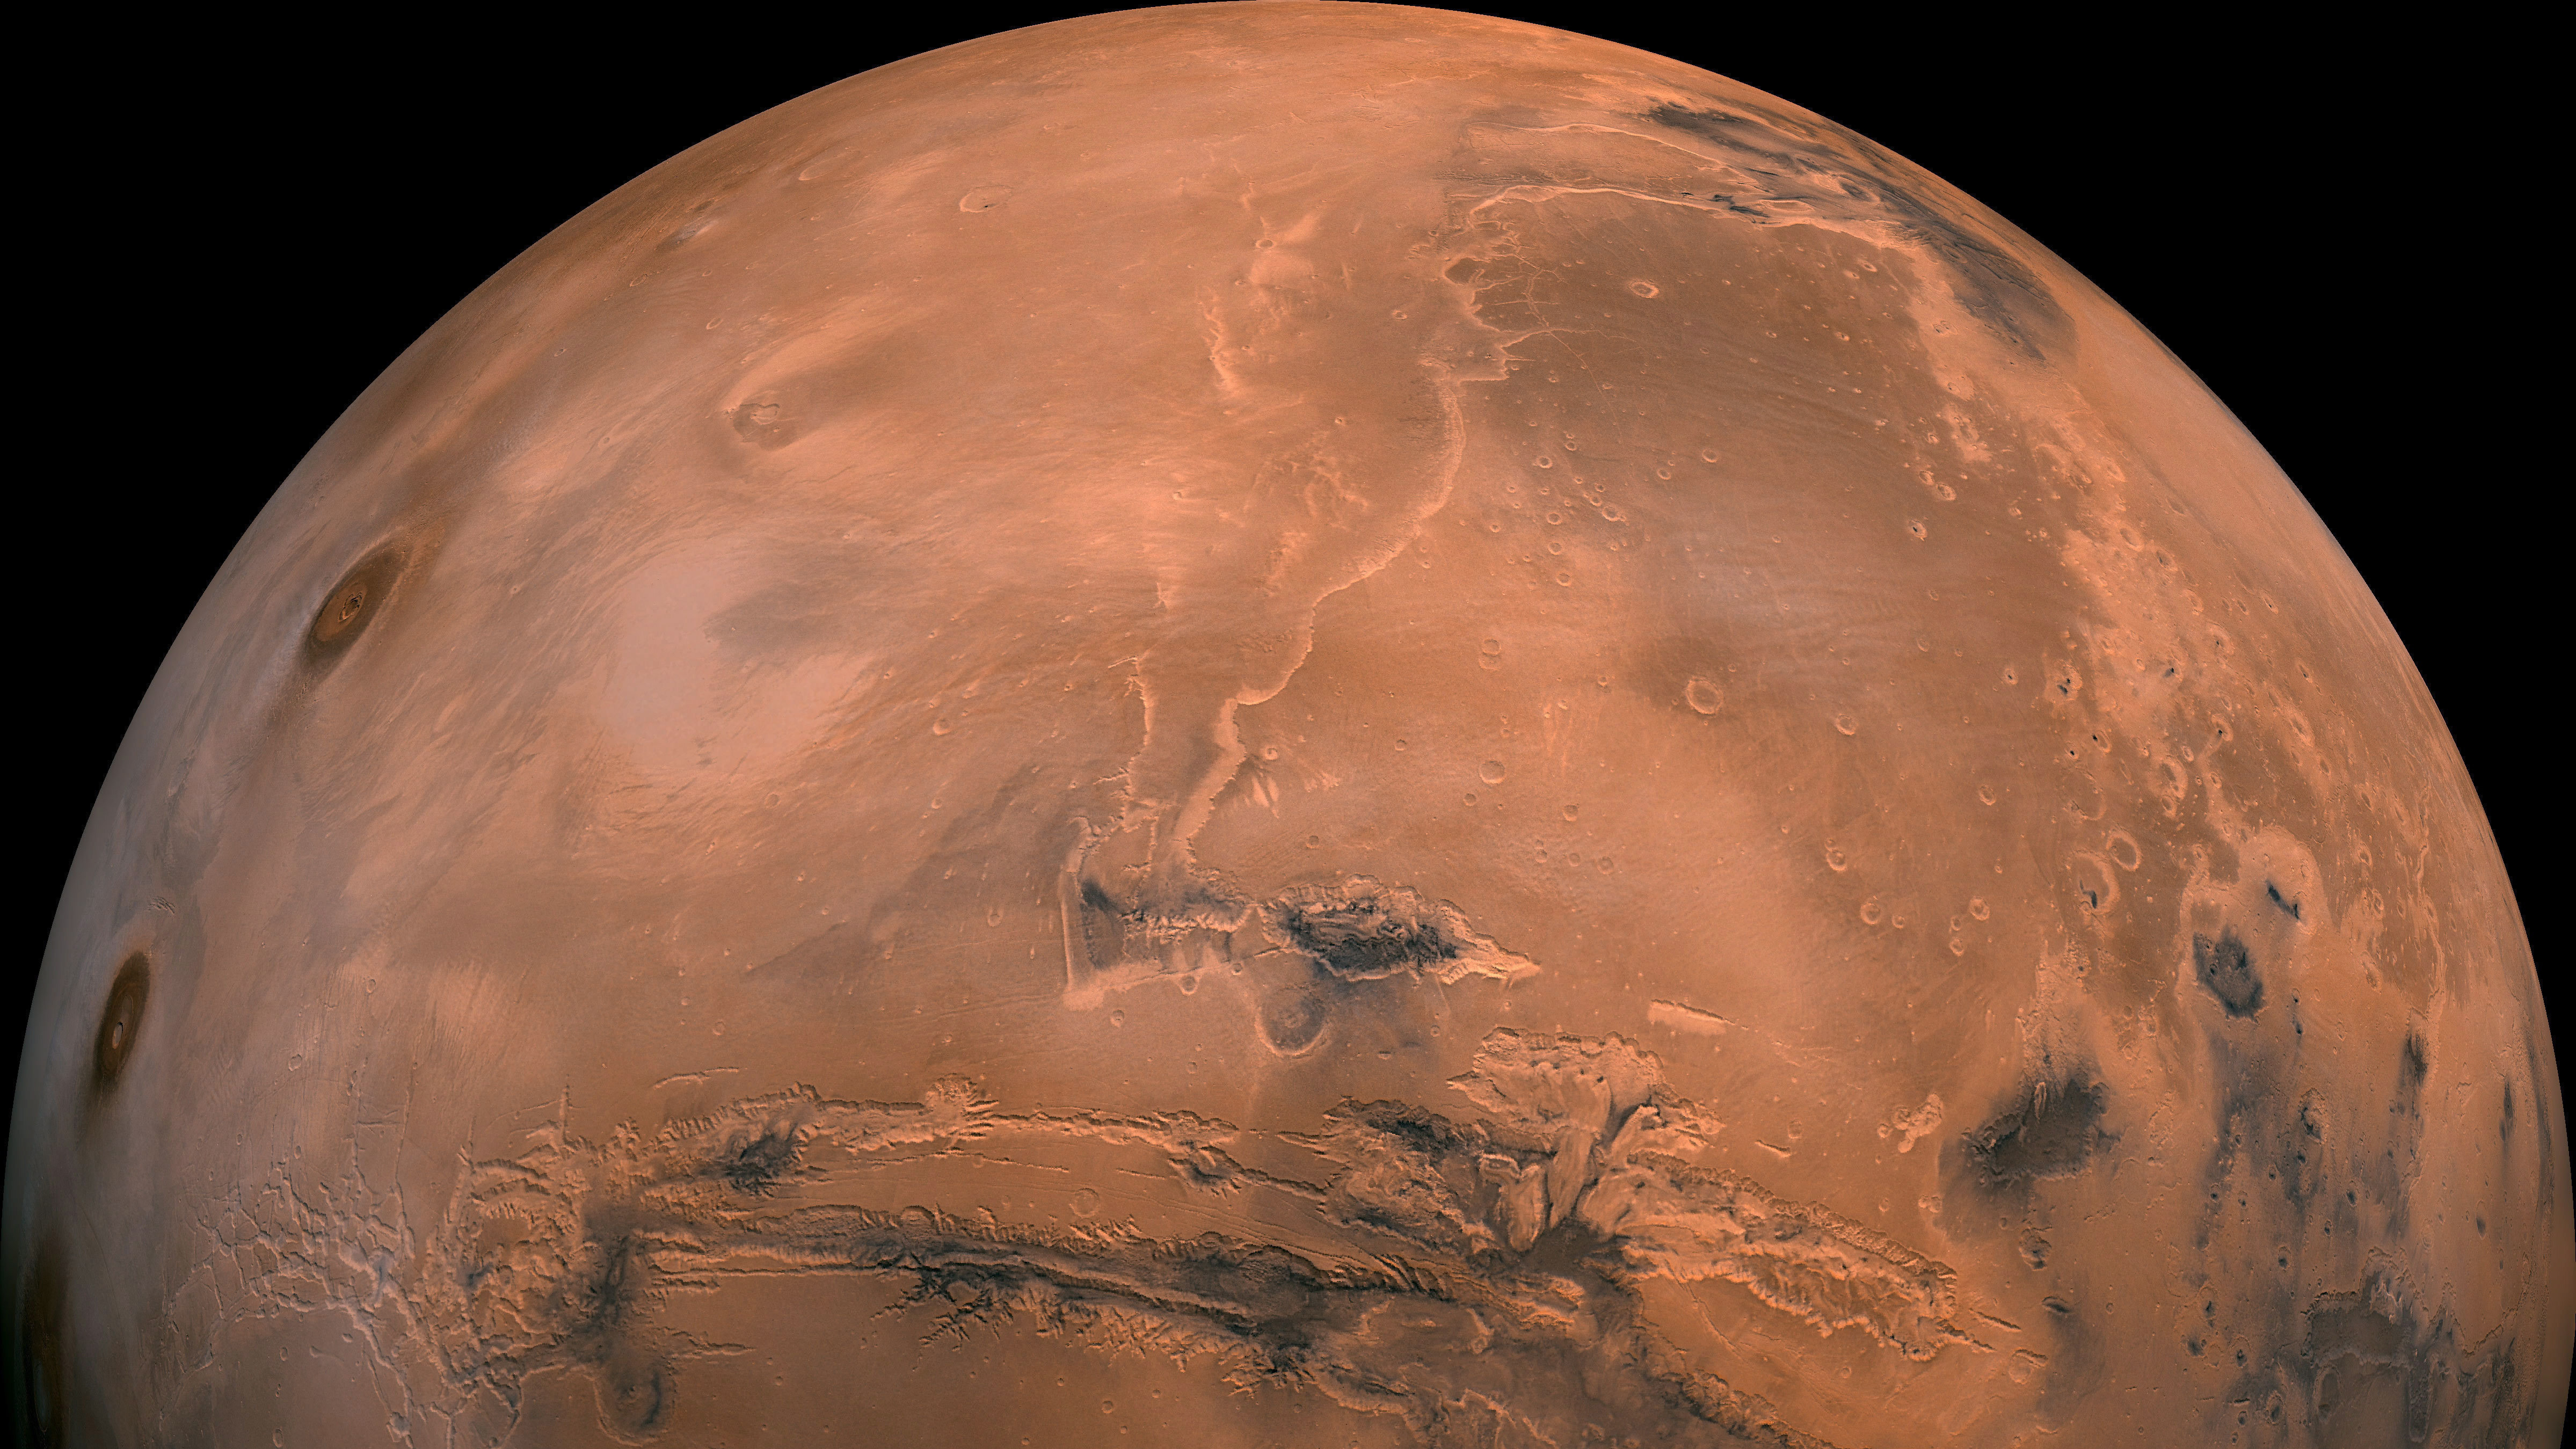 anxiety building as mars landing looms for nasa 680 news